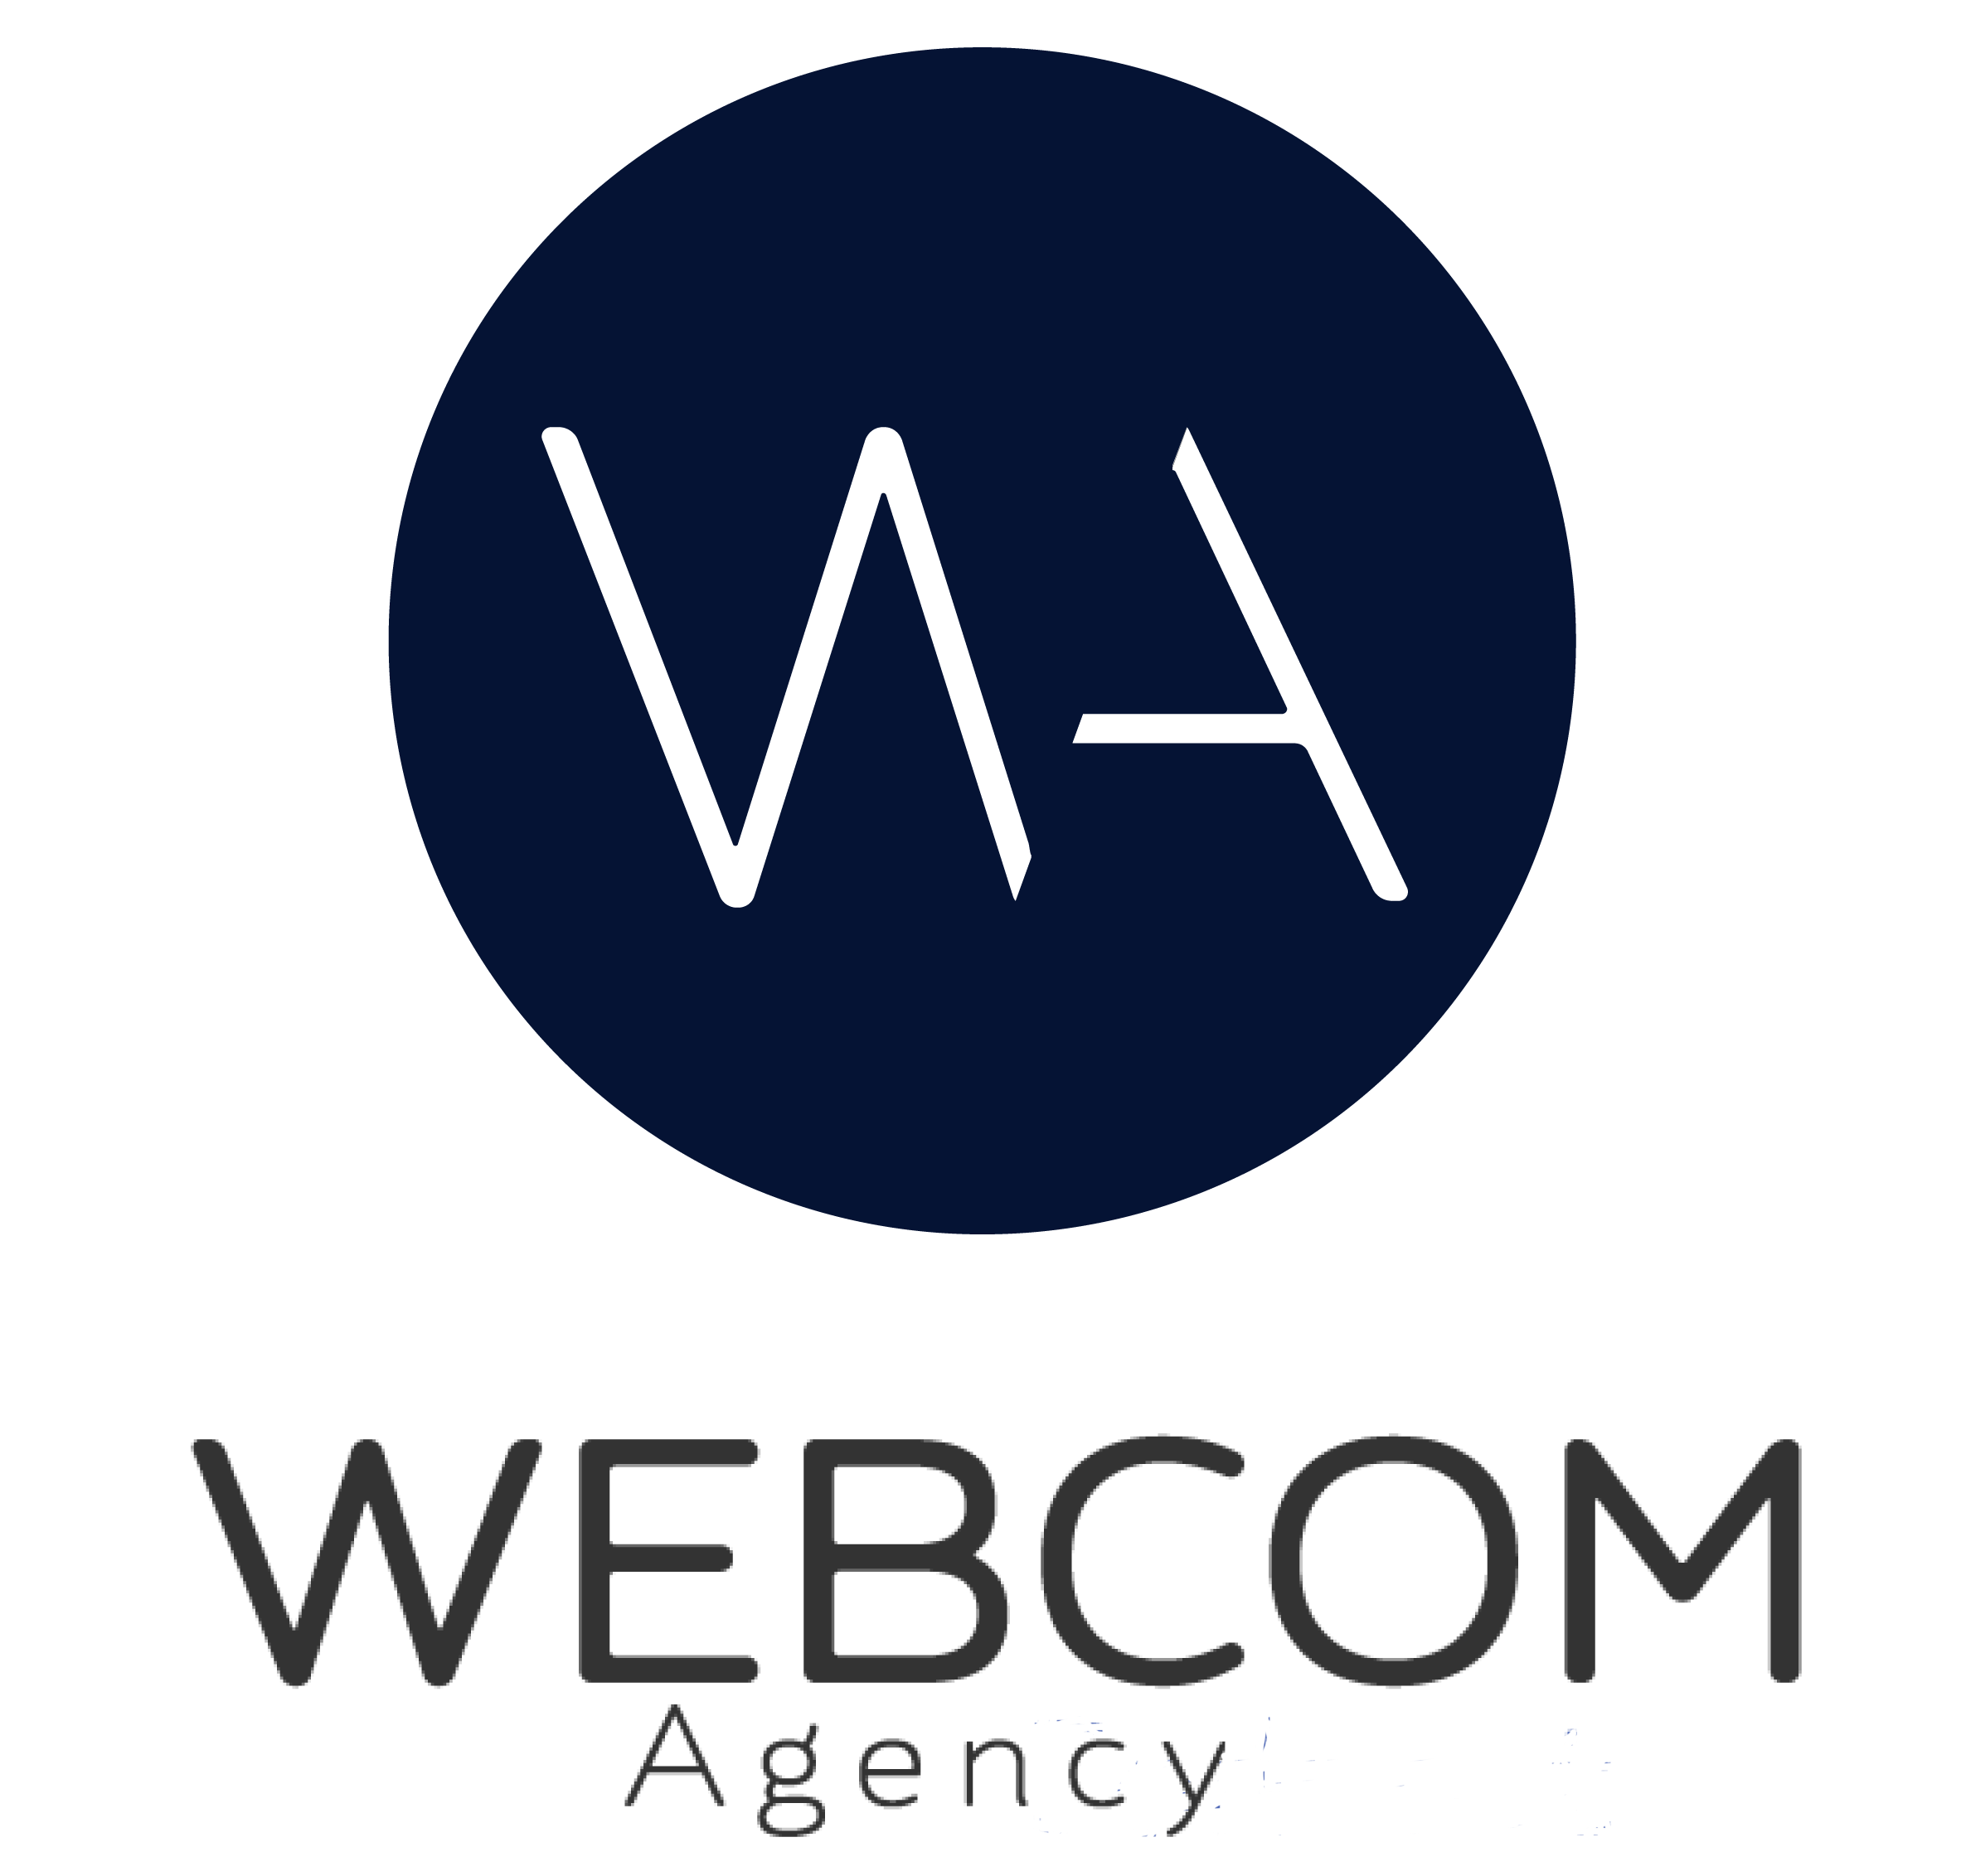 Webcom-agency